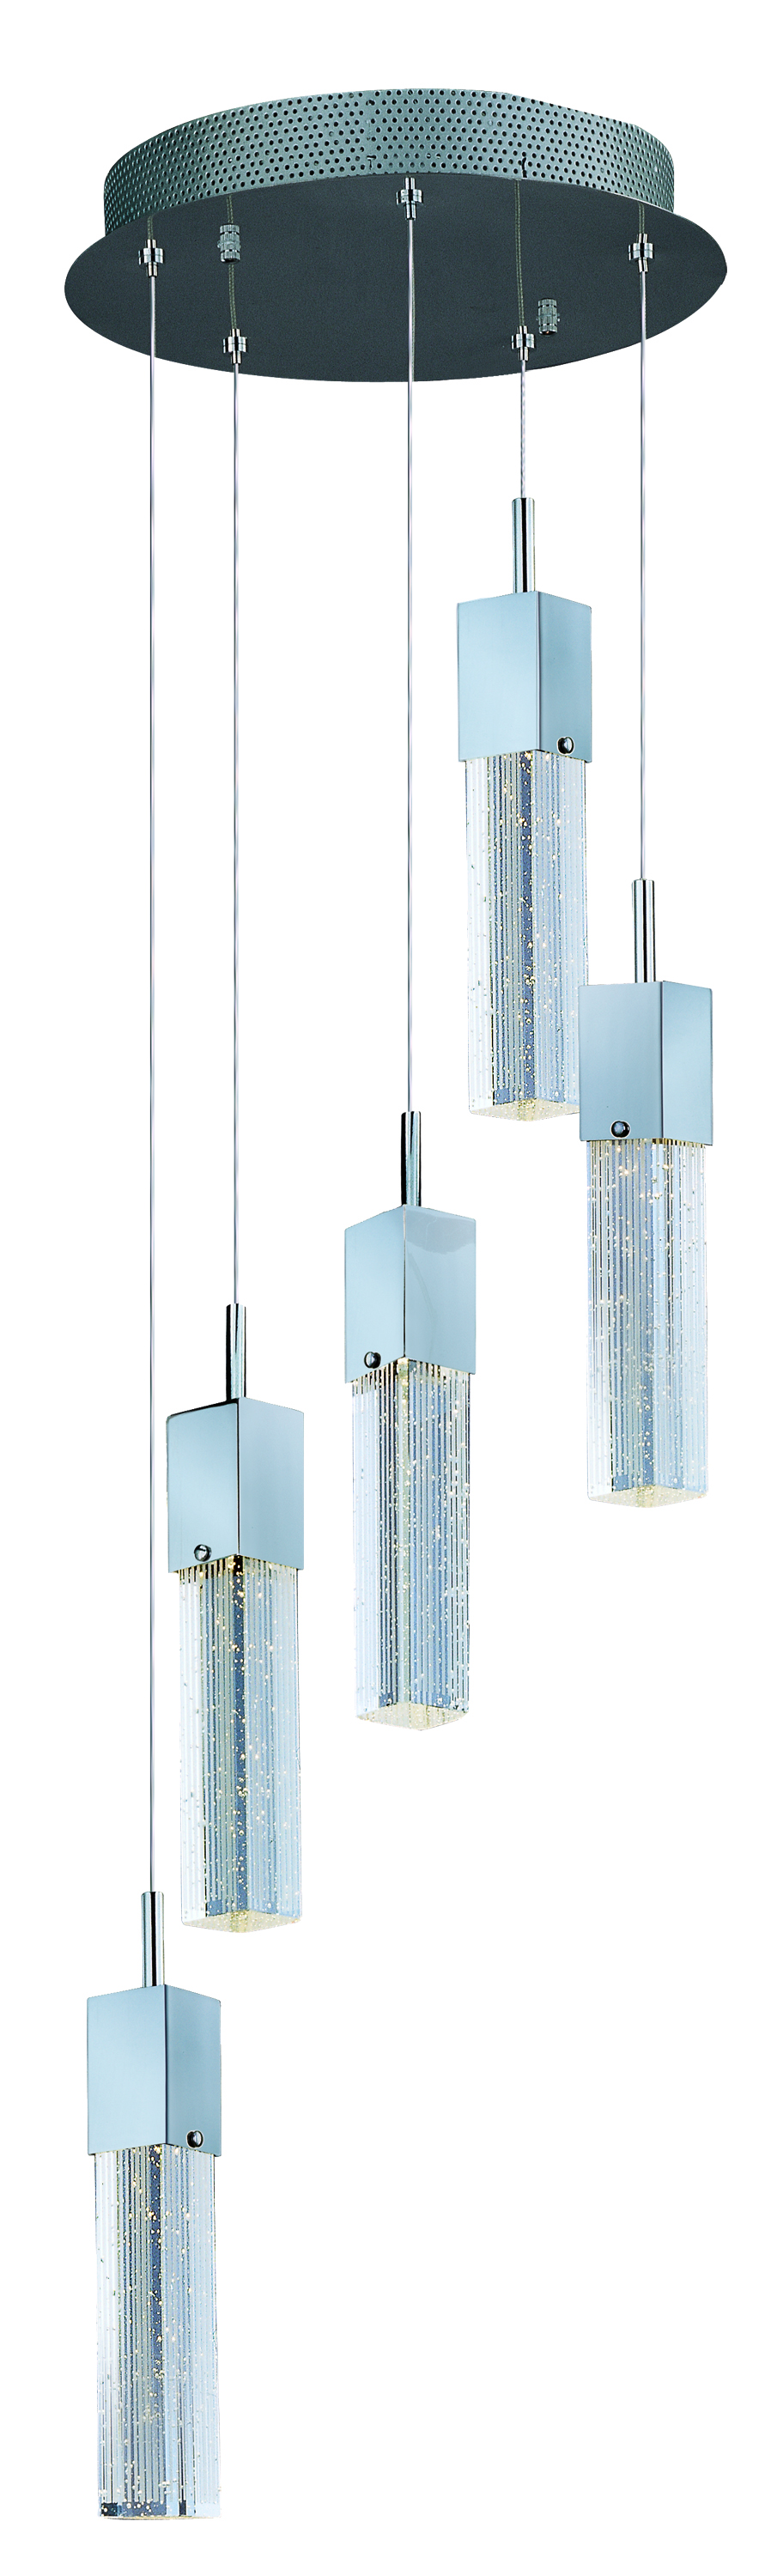 Contemporary lighting pendants Classy Fizz Iii Fizz Iii 5light Led Pendant Lowes Fizz Iii 5light Led Pendant Pendant Et2 Online